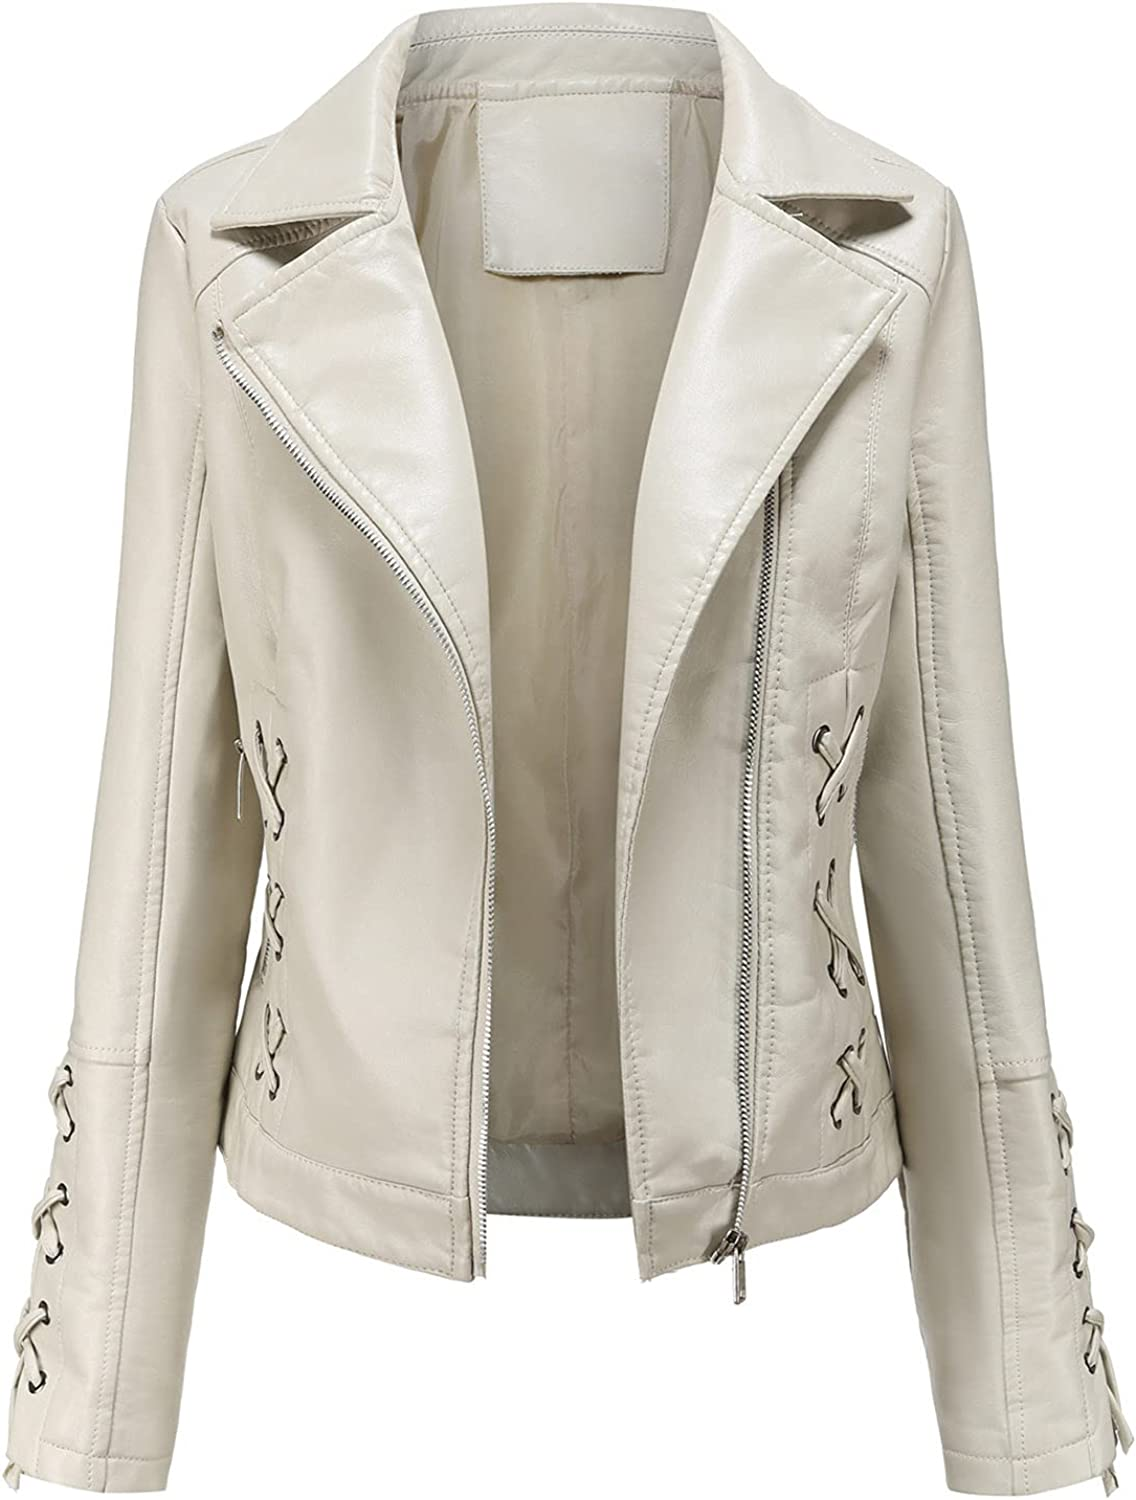 Women's Zip Up Faux Leather Black Jacket,Fashion Fall Winter Fitted Slim Short Lightweight Motorcycle Coat Tops